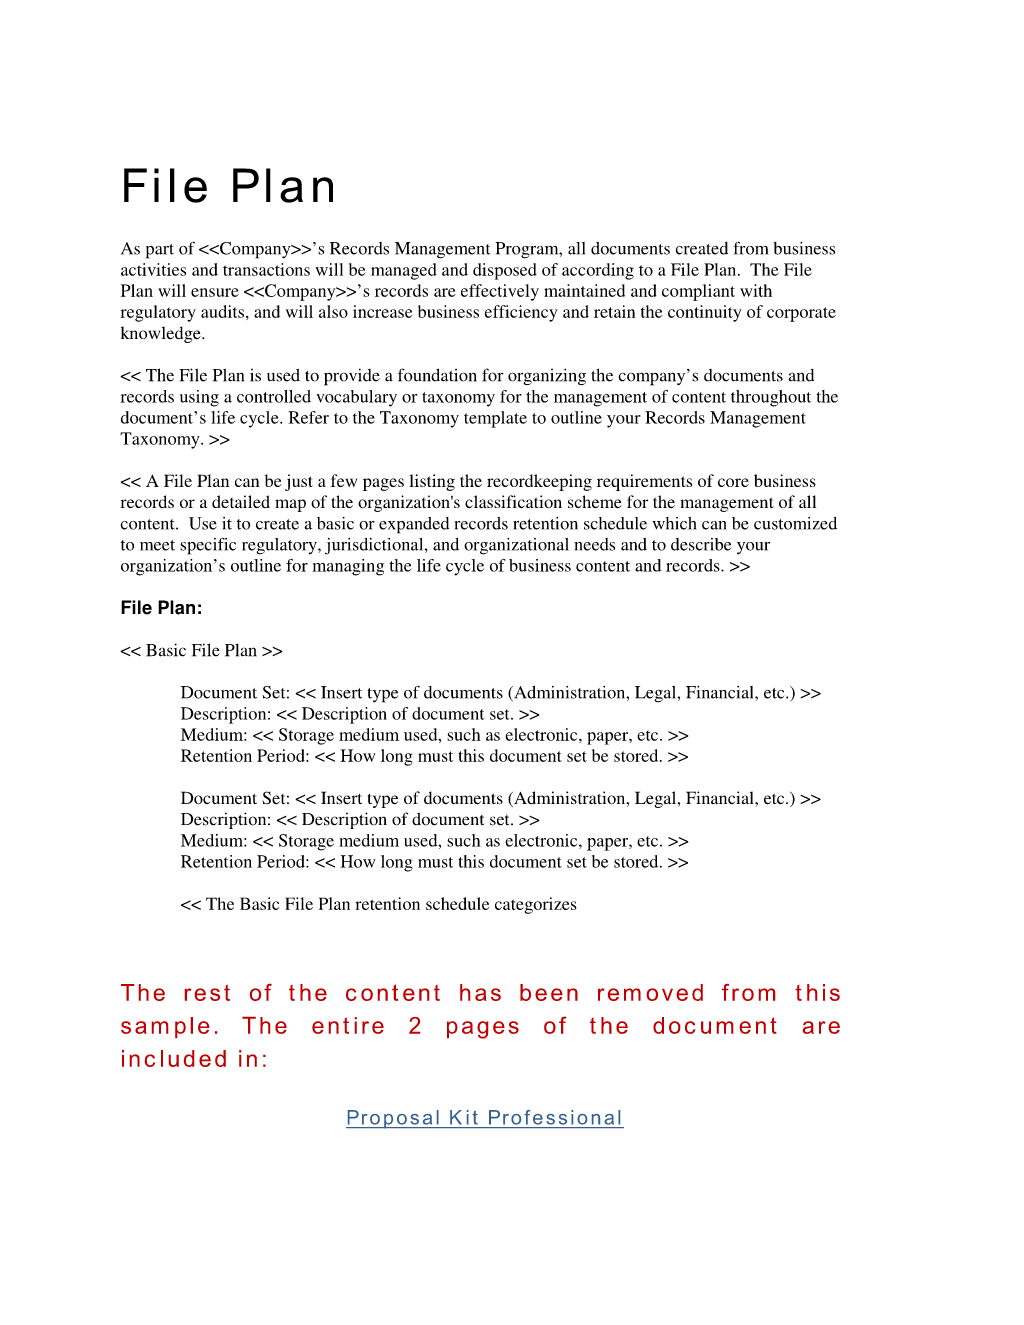 How To Write Your Own Records Management File Plan Template